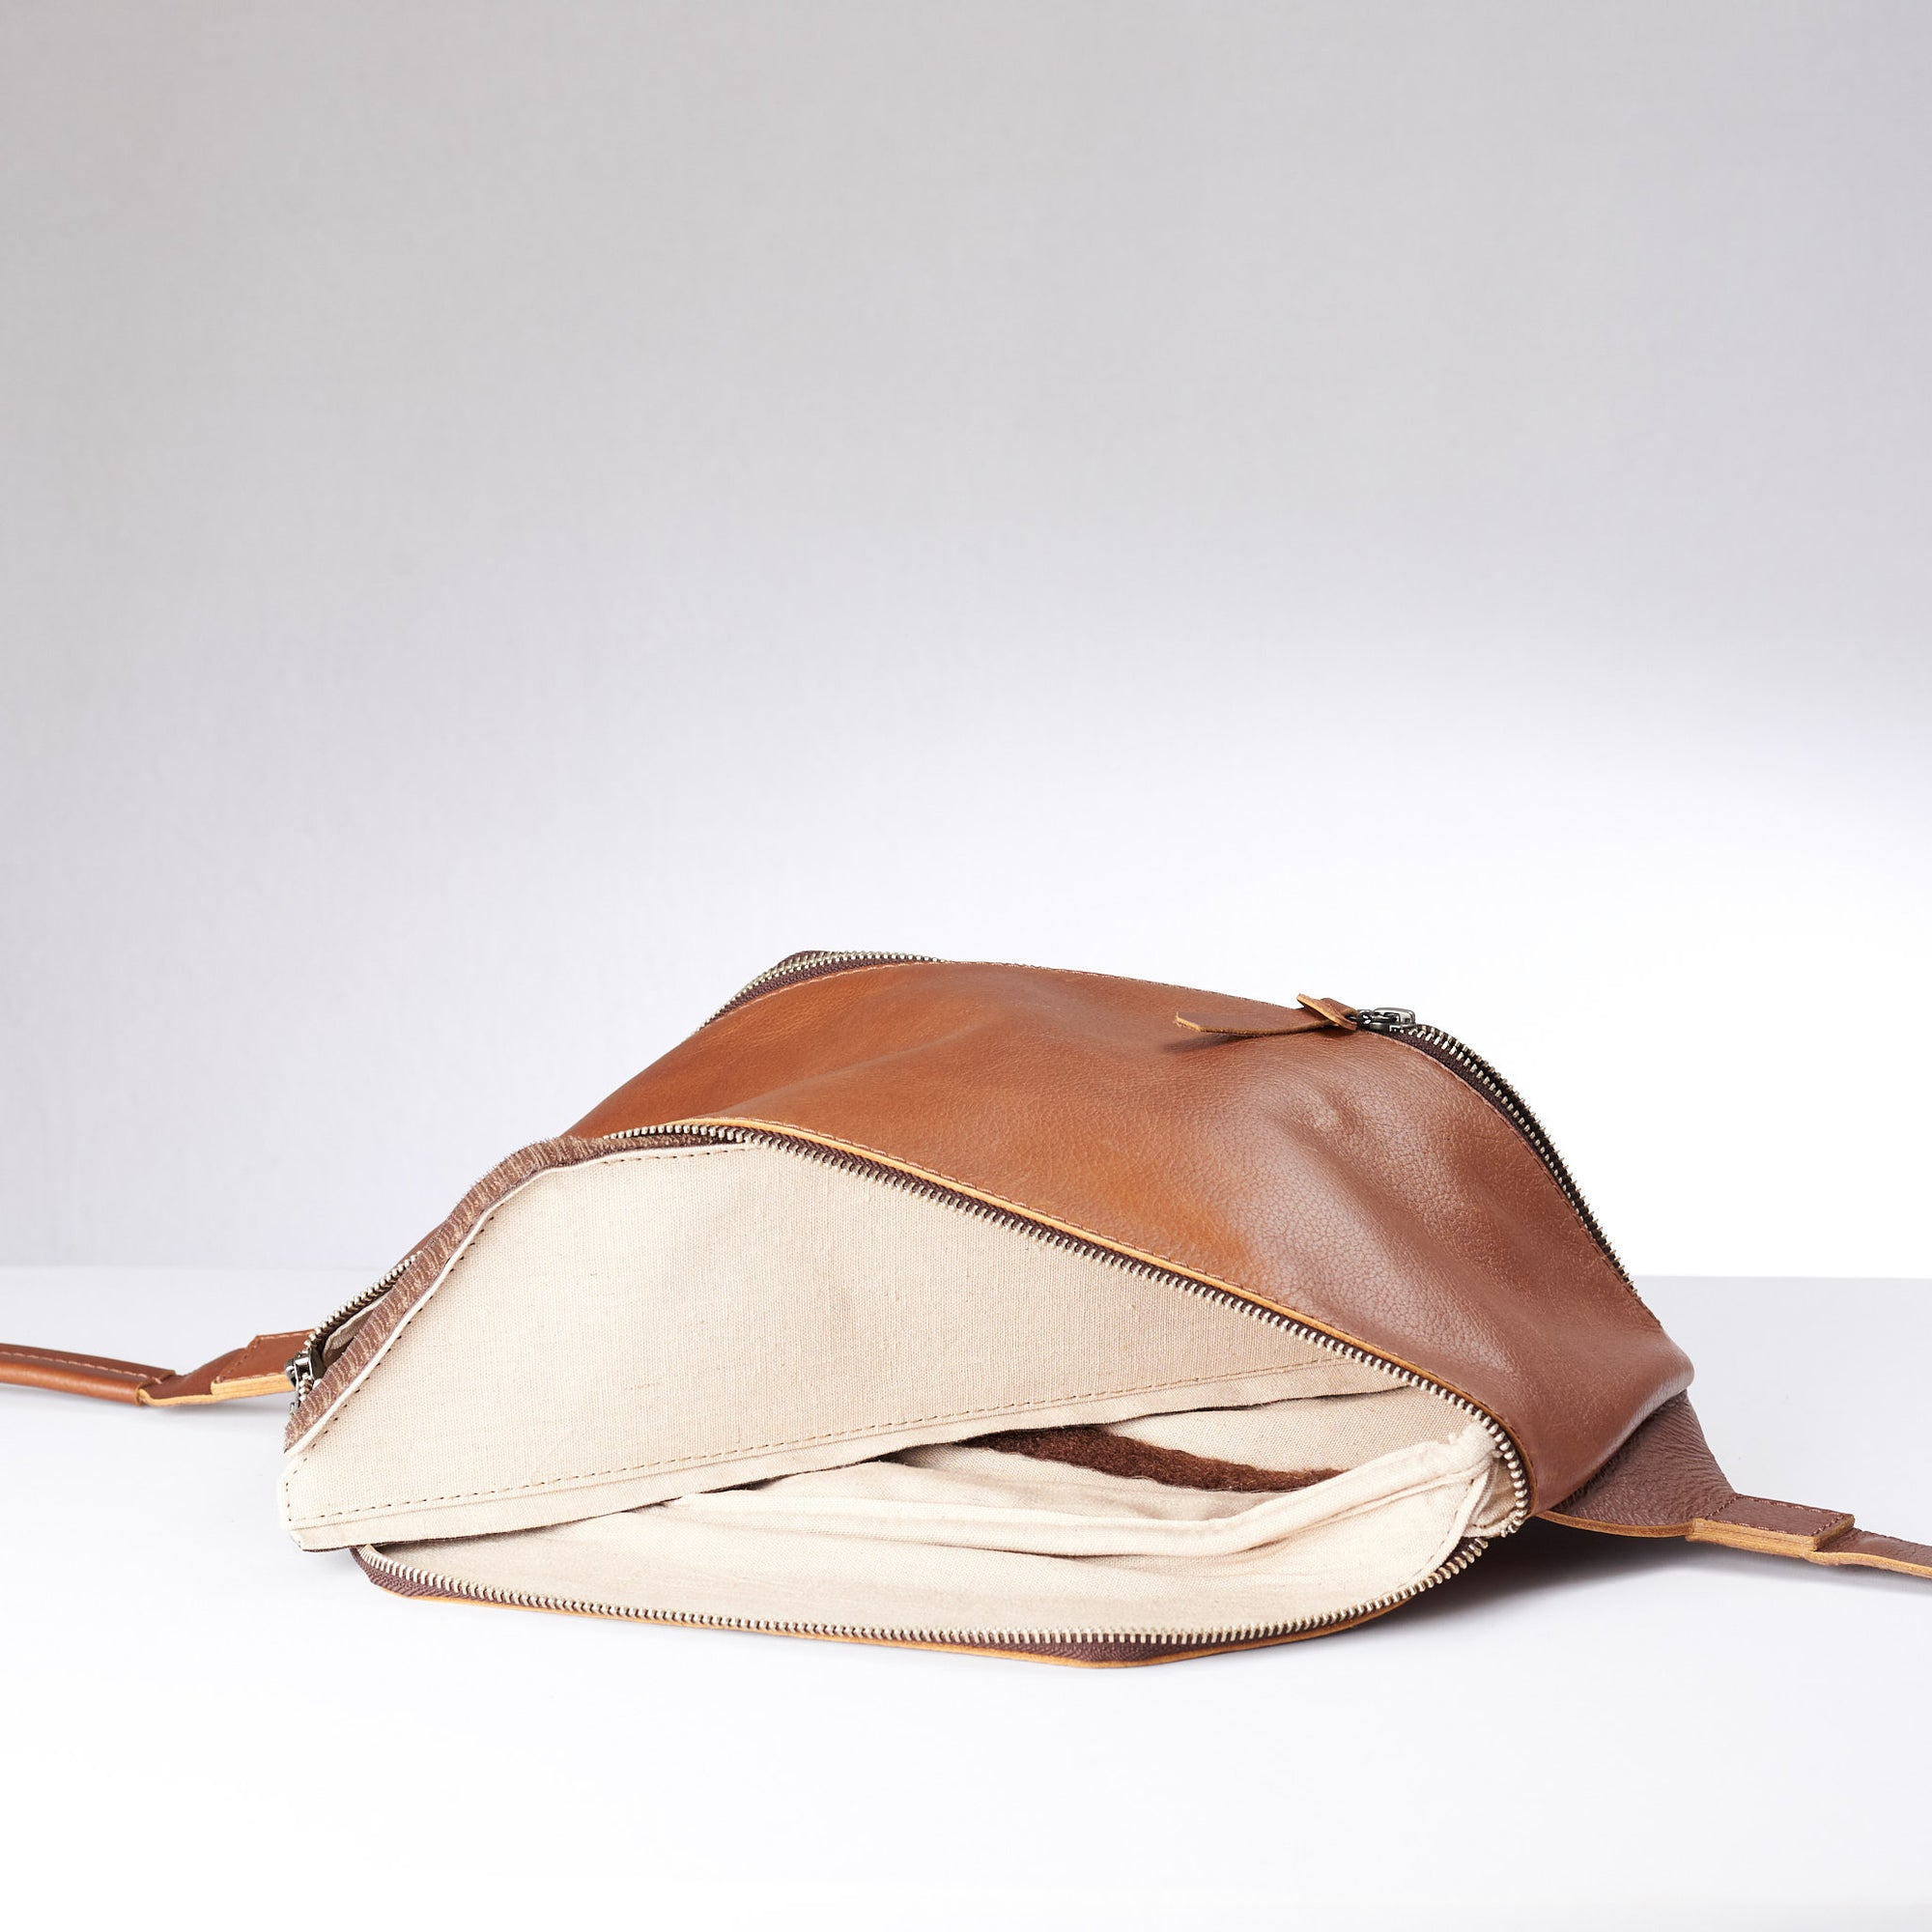 Tan Fenek sling bag backpack made by Capra Leather. Frontal view of small leather crossbody and single strap.